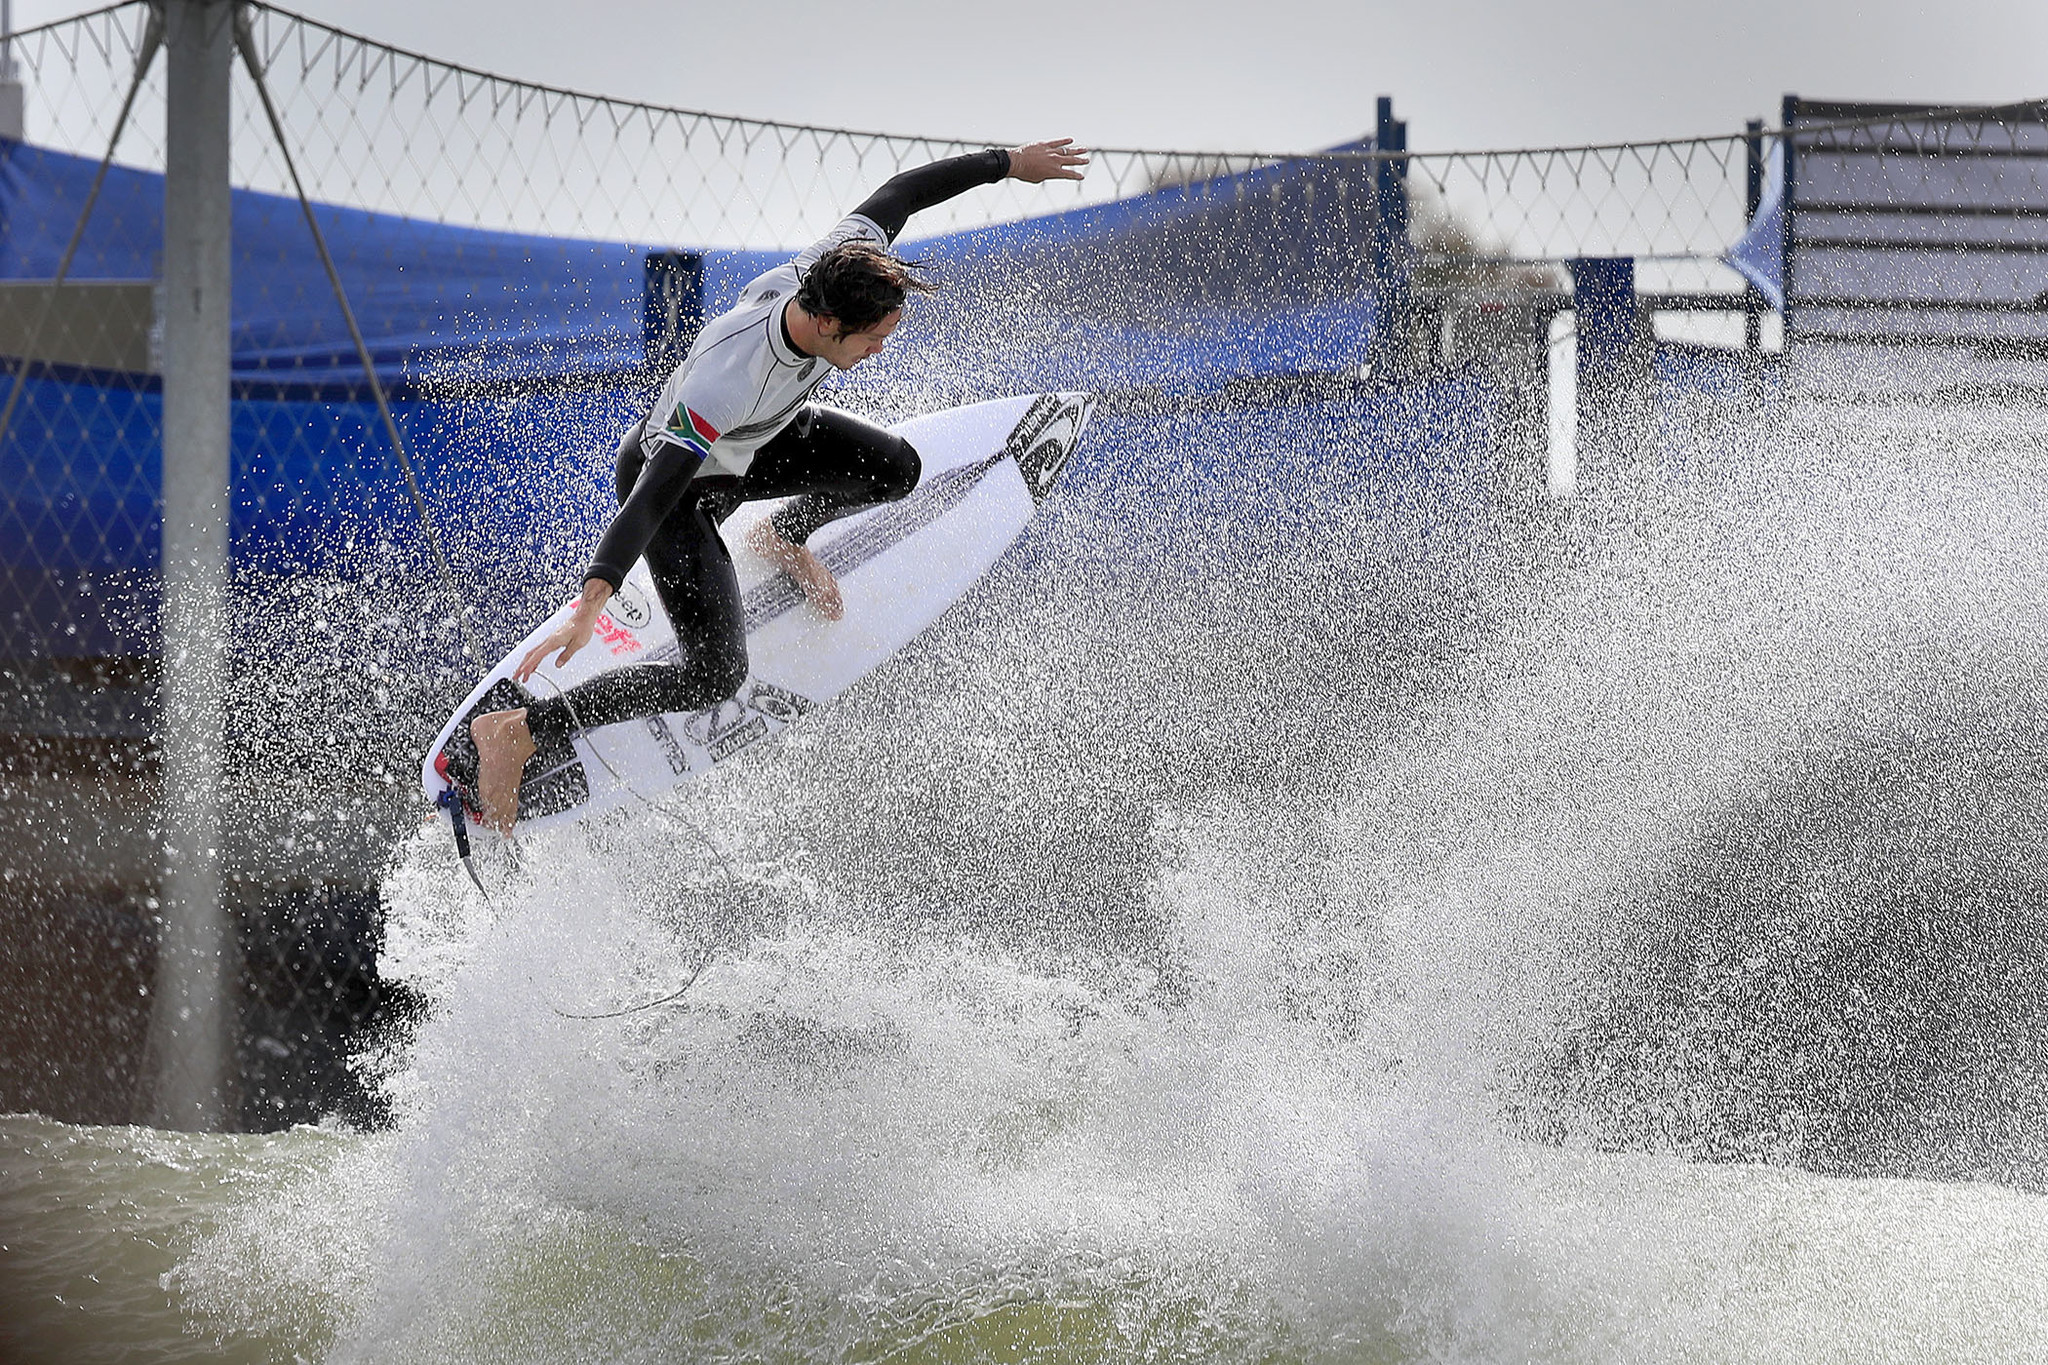 LEMOORE, CALIF. -- SATURDAY, MAY 5, 2018: Jordy Smith, of South Africa and currently of San Clemente